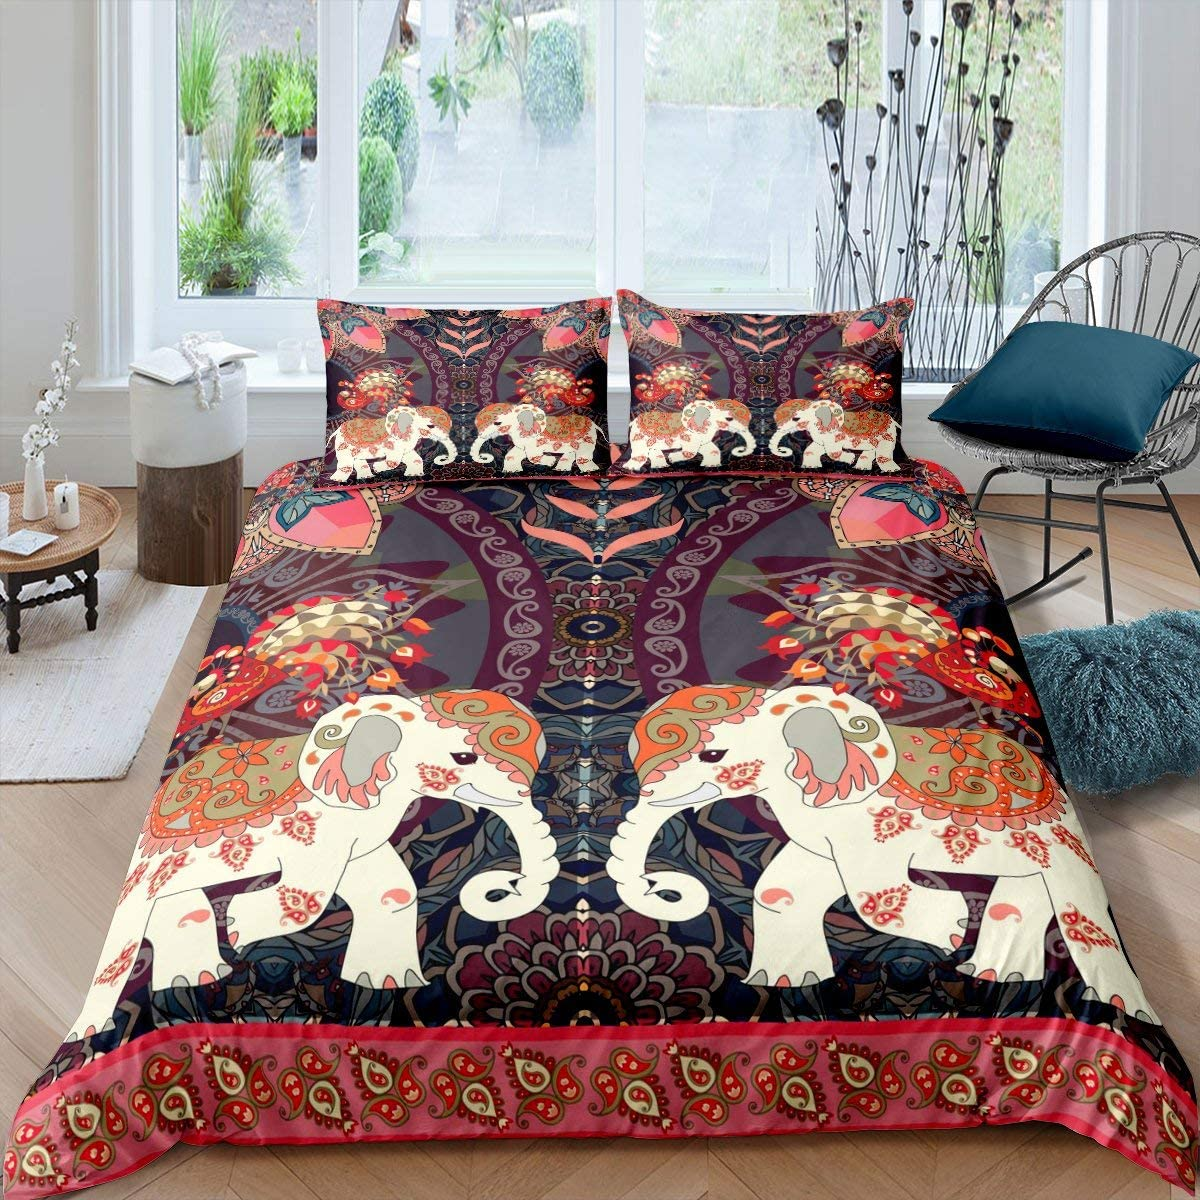 Boho Elephant Comforter Cover for Adult Women Girls Bohemian Mandala Printed Vintage Luxury Duvet Cover Exotic Retro Holy Style Bedding Set Colorful Floral Printed Bedspread with Zipper Ties, Full